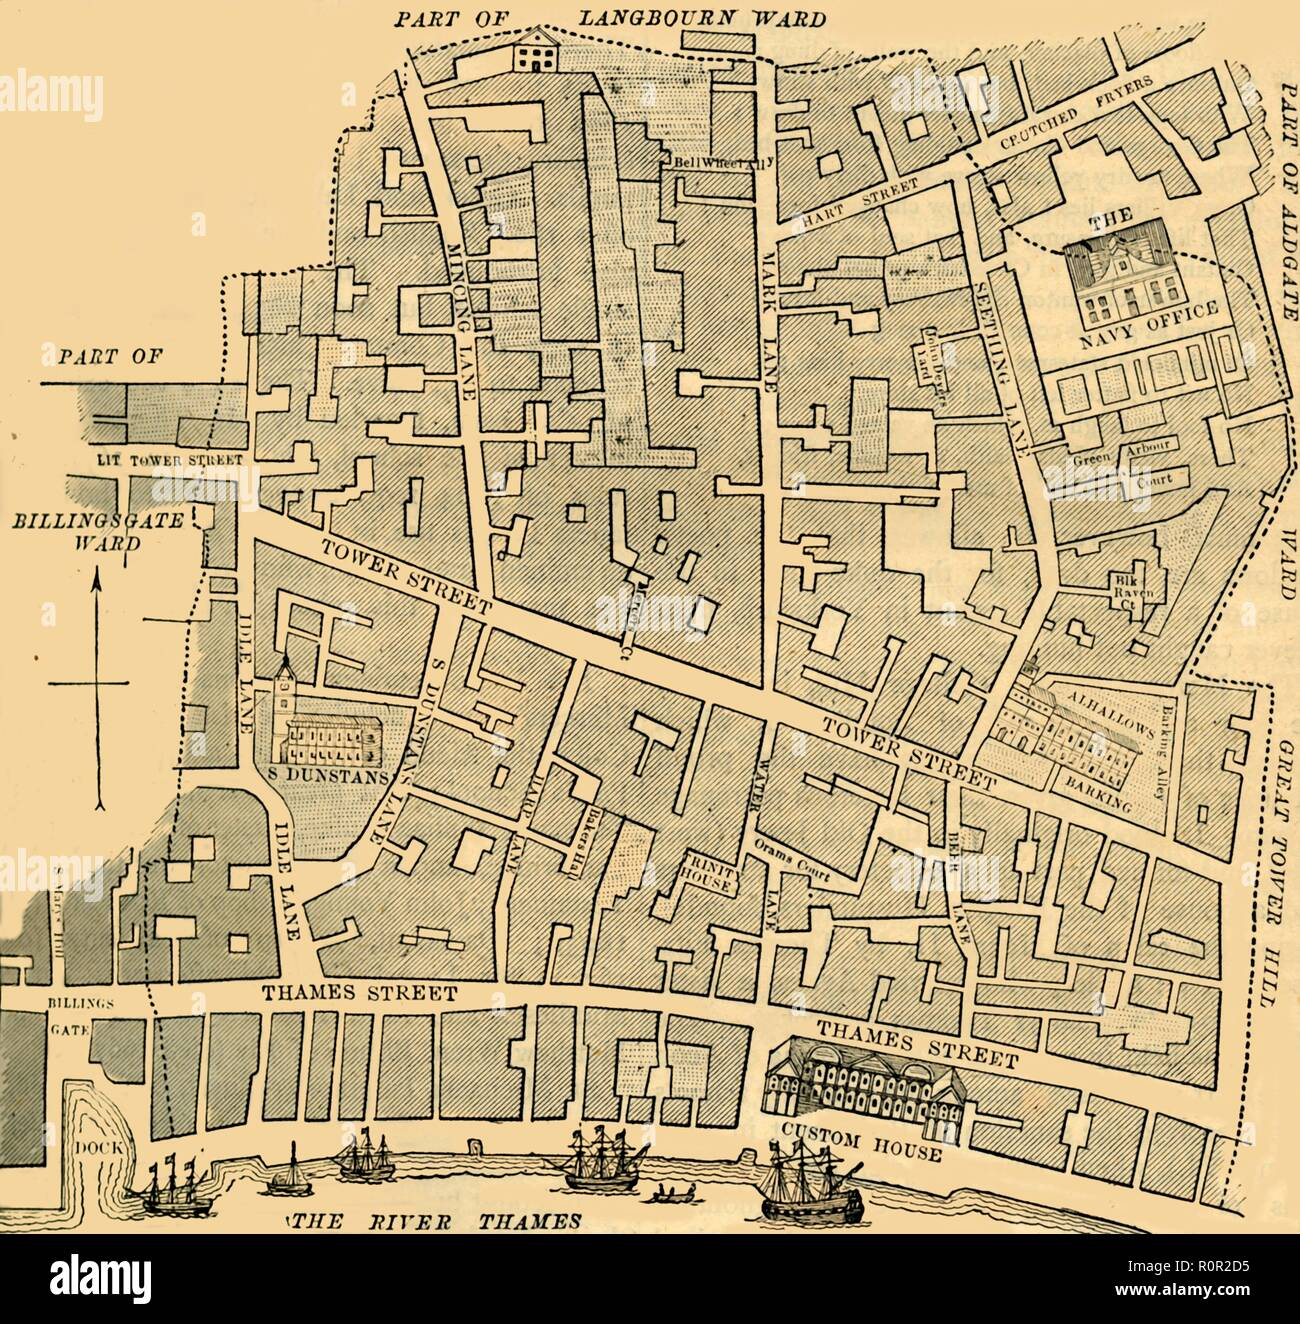 'Tower Street Ward', (c1872). Map dating from  1773, of part of the City of London, showing Custom House and ships on the River Thames. From Old and New London, Vol. II: A Narrative of Its History, Its People, and Its Places, by Walter Thornbury. [Cassell, Petter, Galpin & Co., London, Paris & New York] - Stock Image